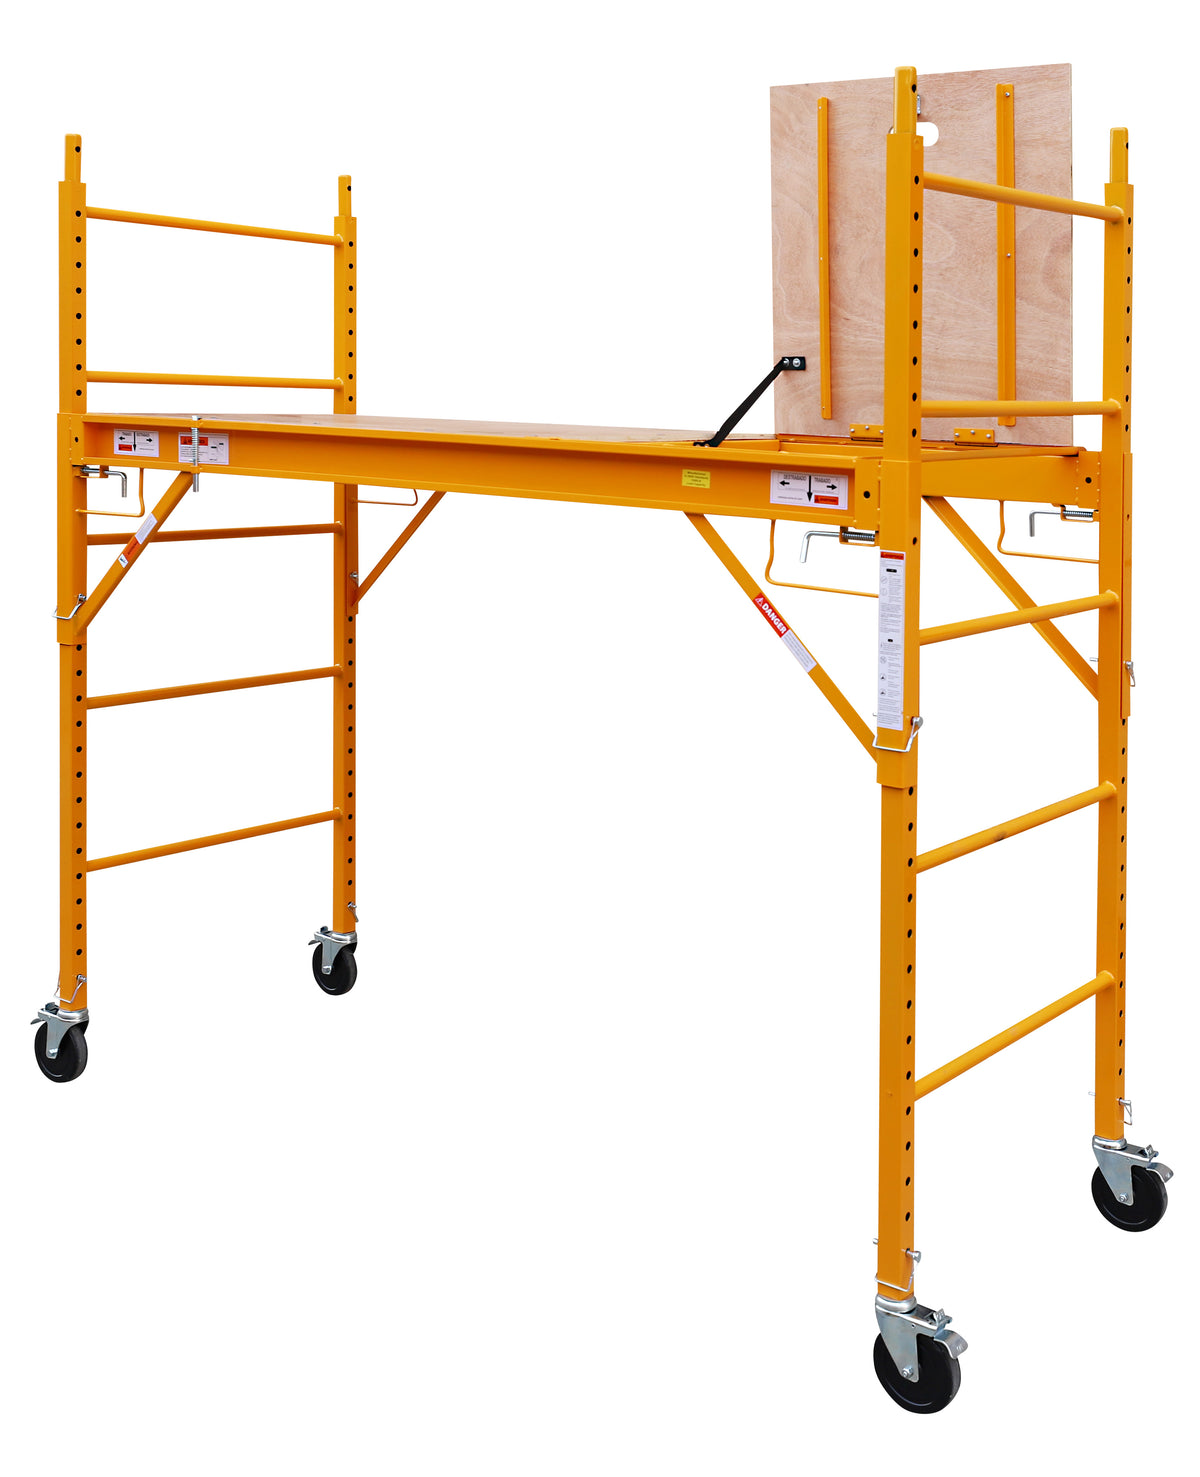 12 Foot Multi Purpose Rolling Scaffolding with Hatch, 1000-LB Capacity